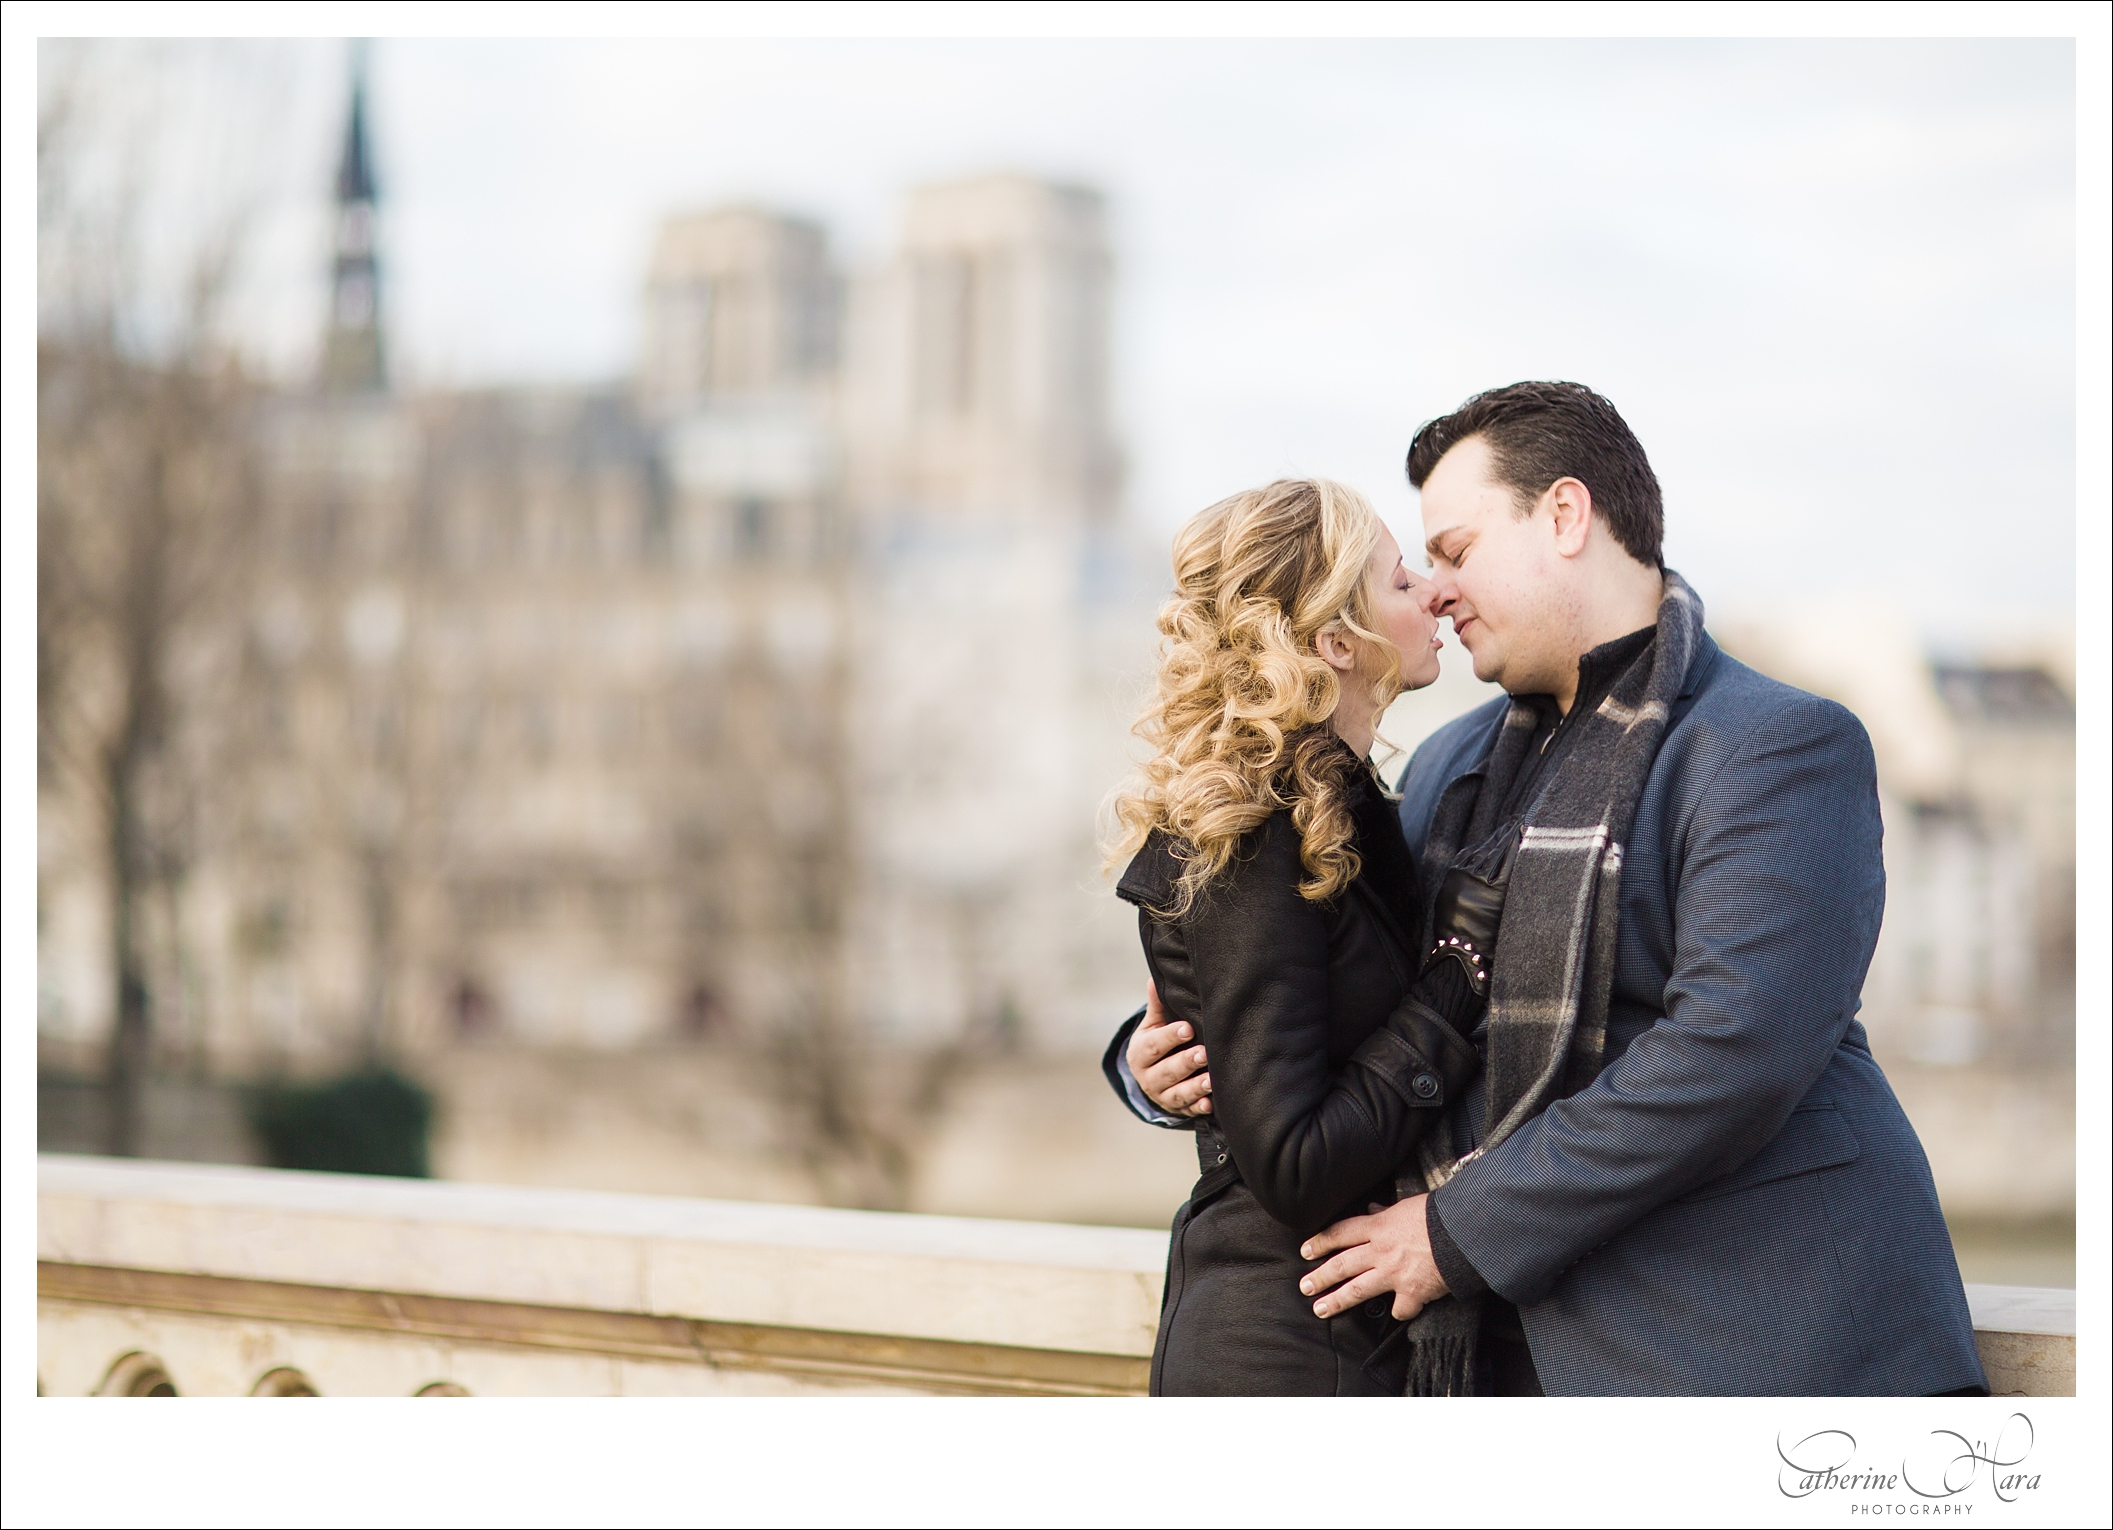 English Speaking Wedding Photographer in Paris, France